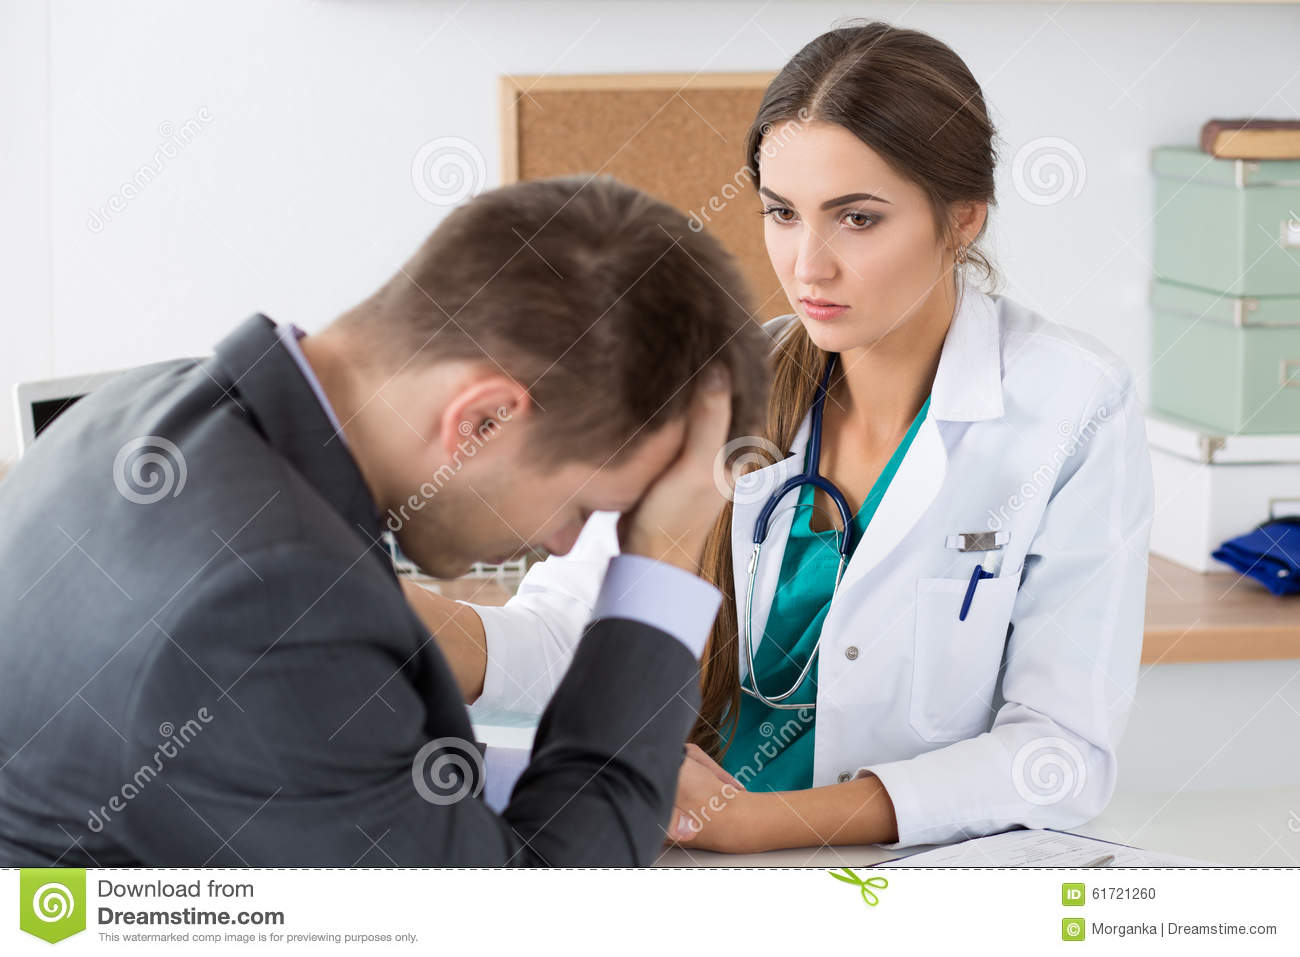 Friendly Female Medicine Doctor's Holding Male Patient's